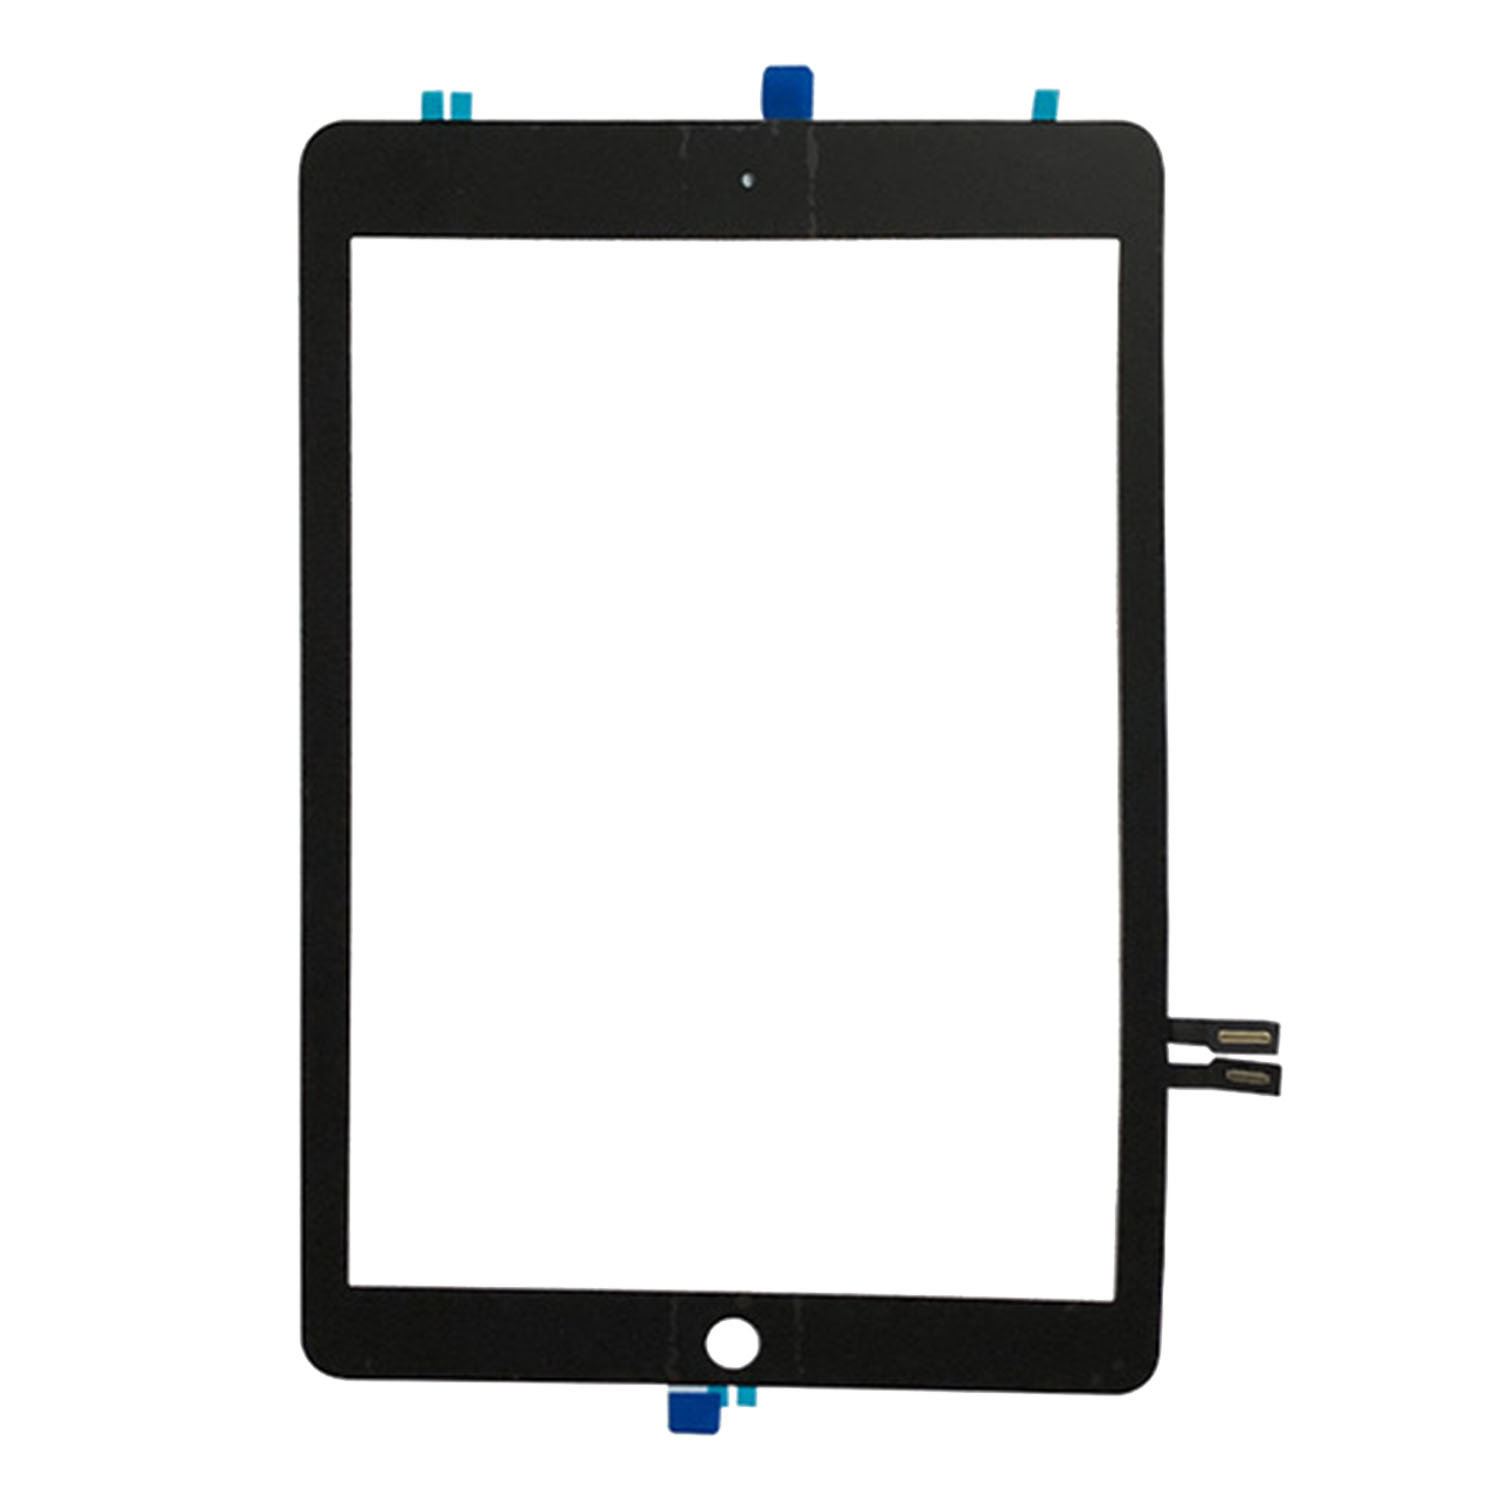 iPad 6th (2018) Glass & Touch Digitizer Replacement - Black  - Original Quality